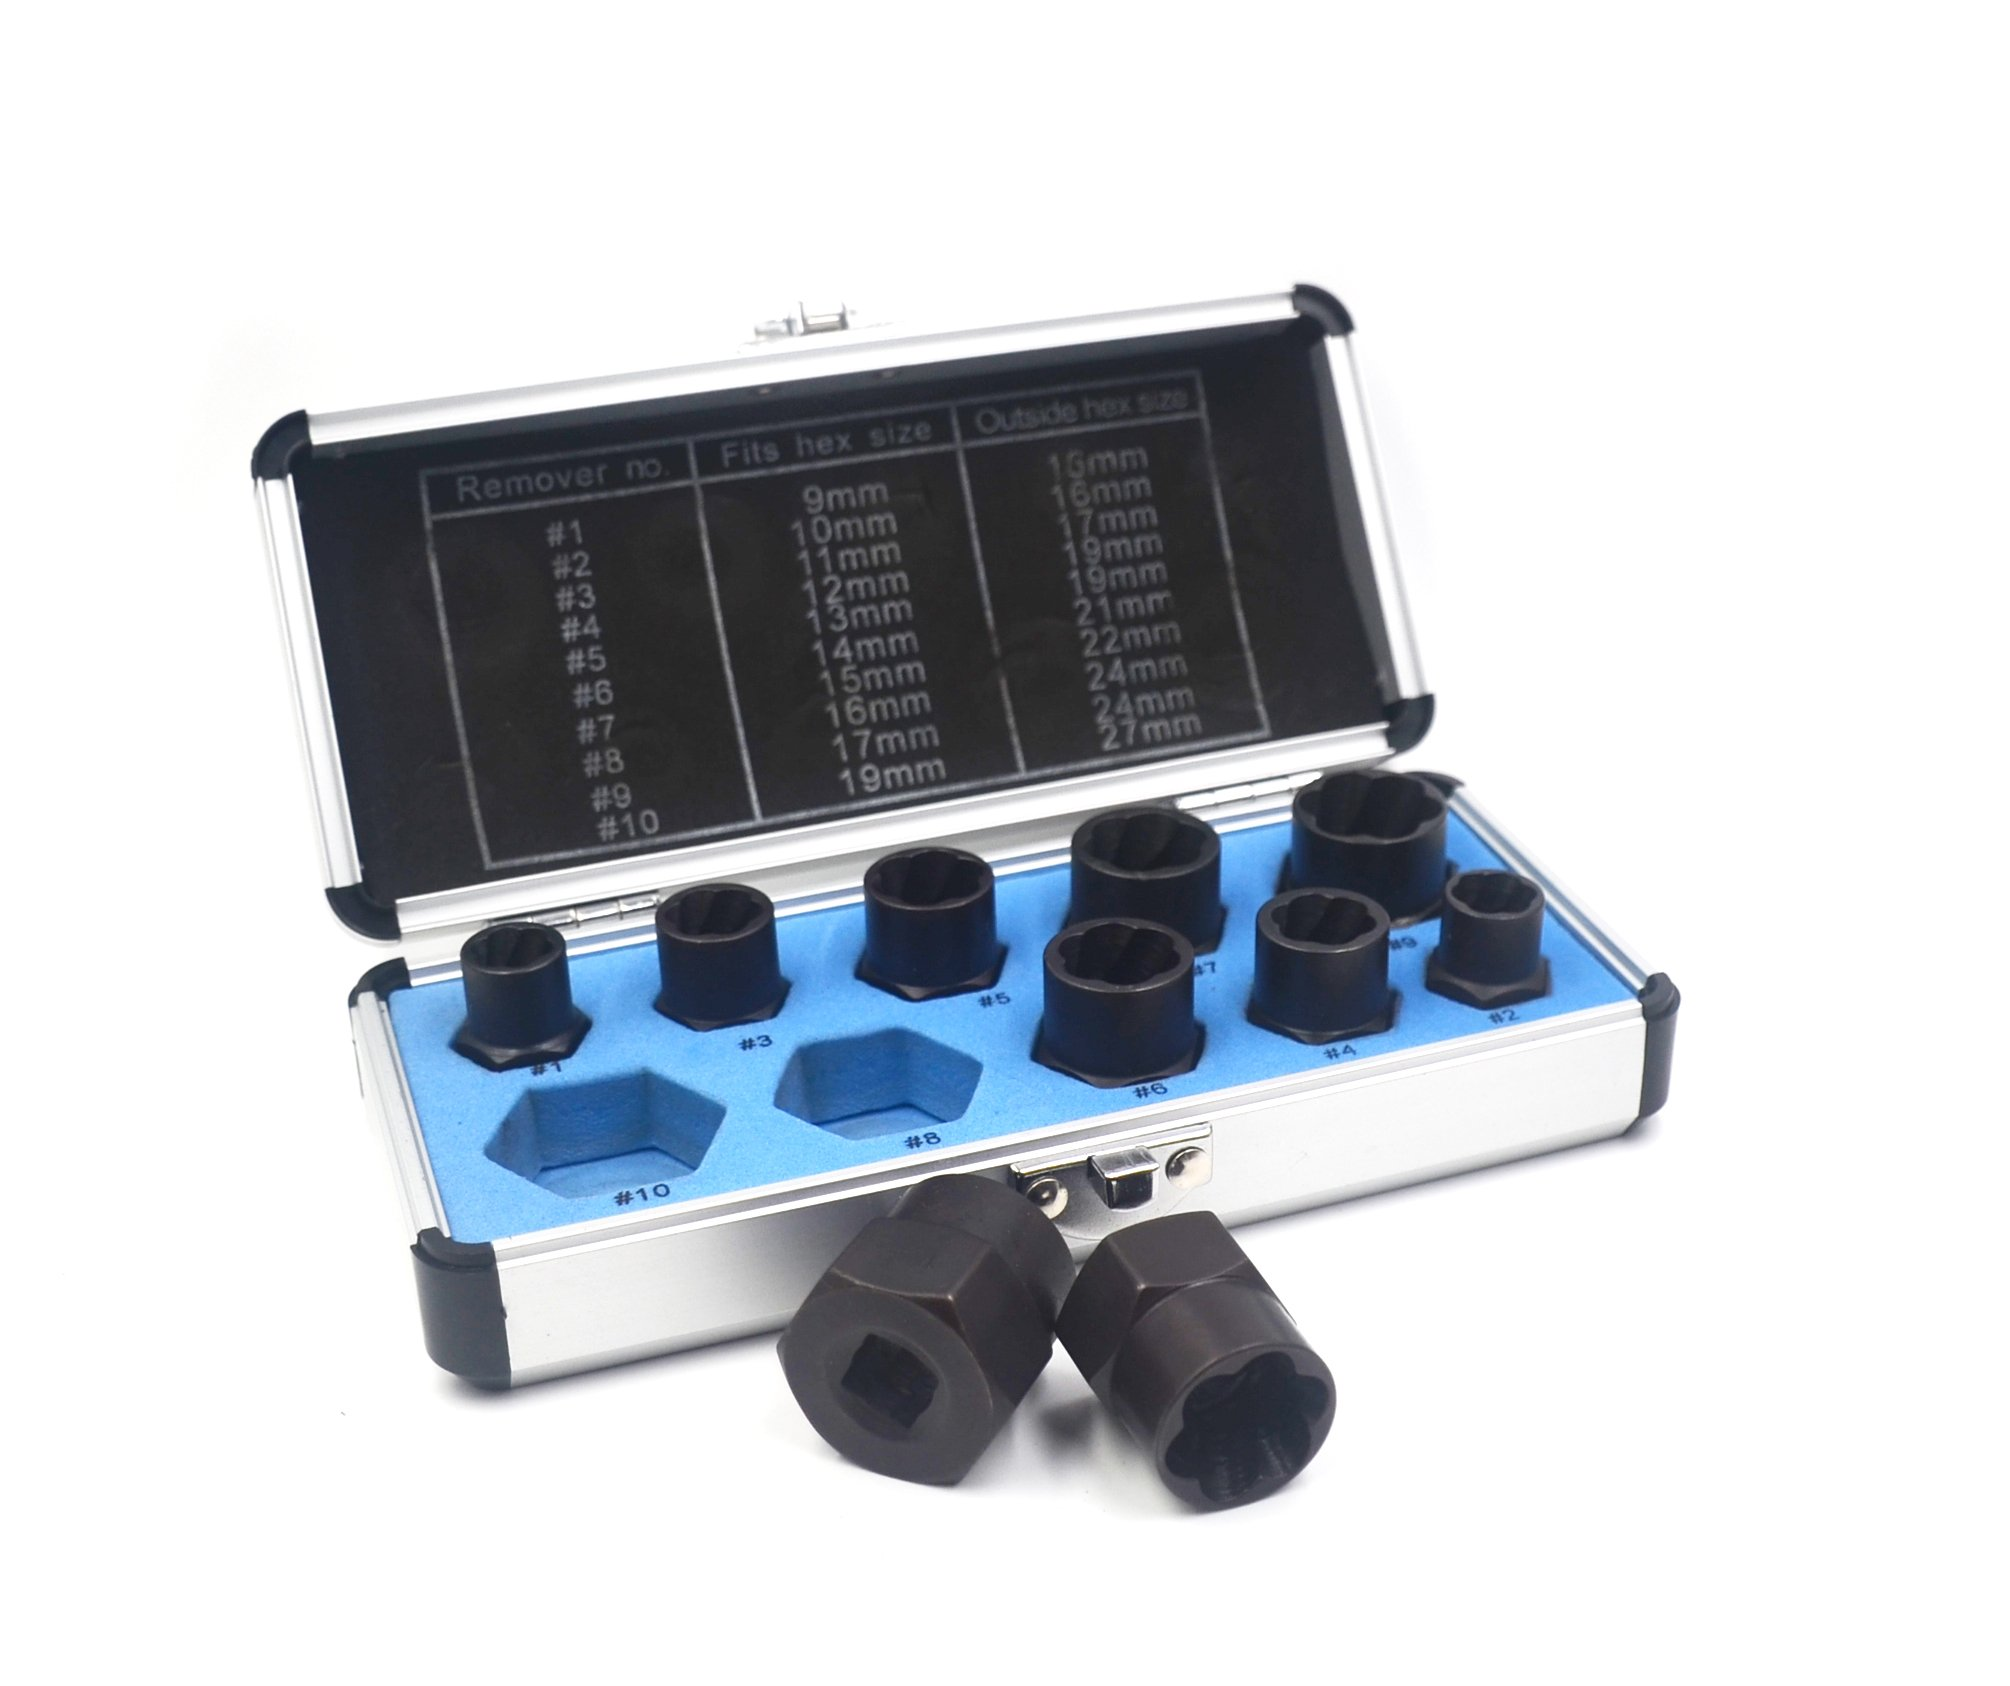 IRISFLY 11 Pcs Bolt and Nut Grip Extractor Expansion Set